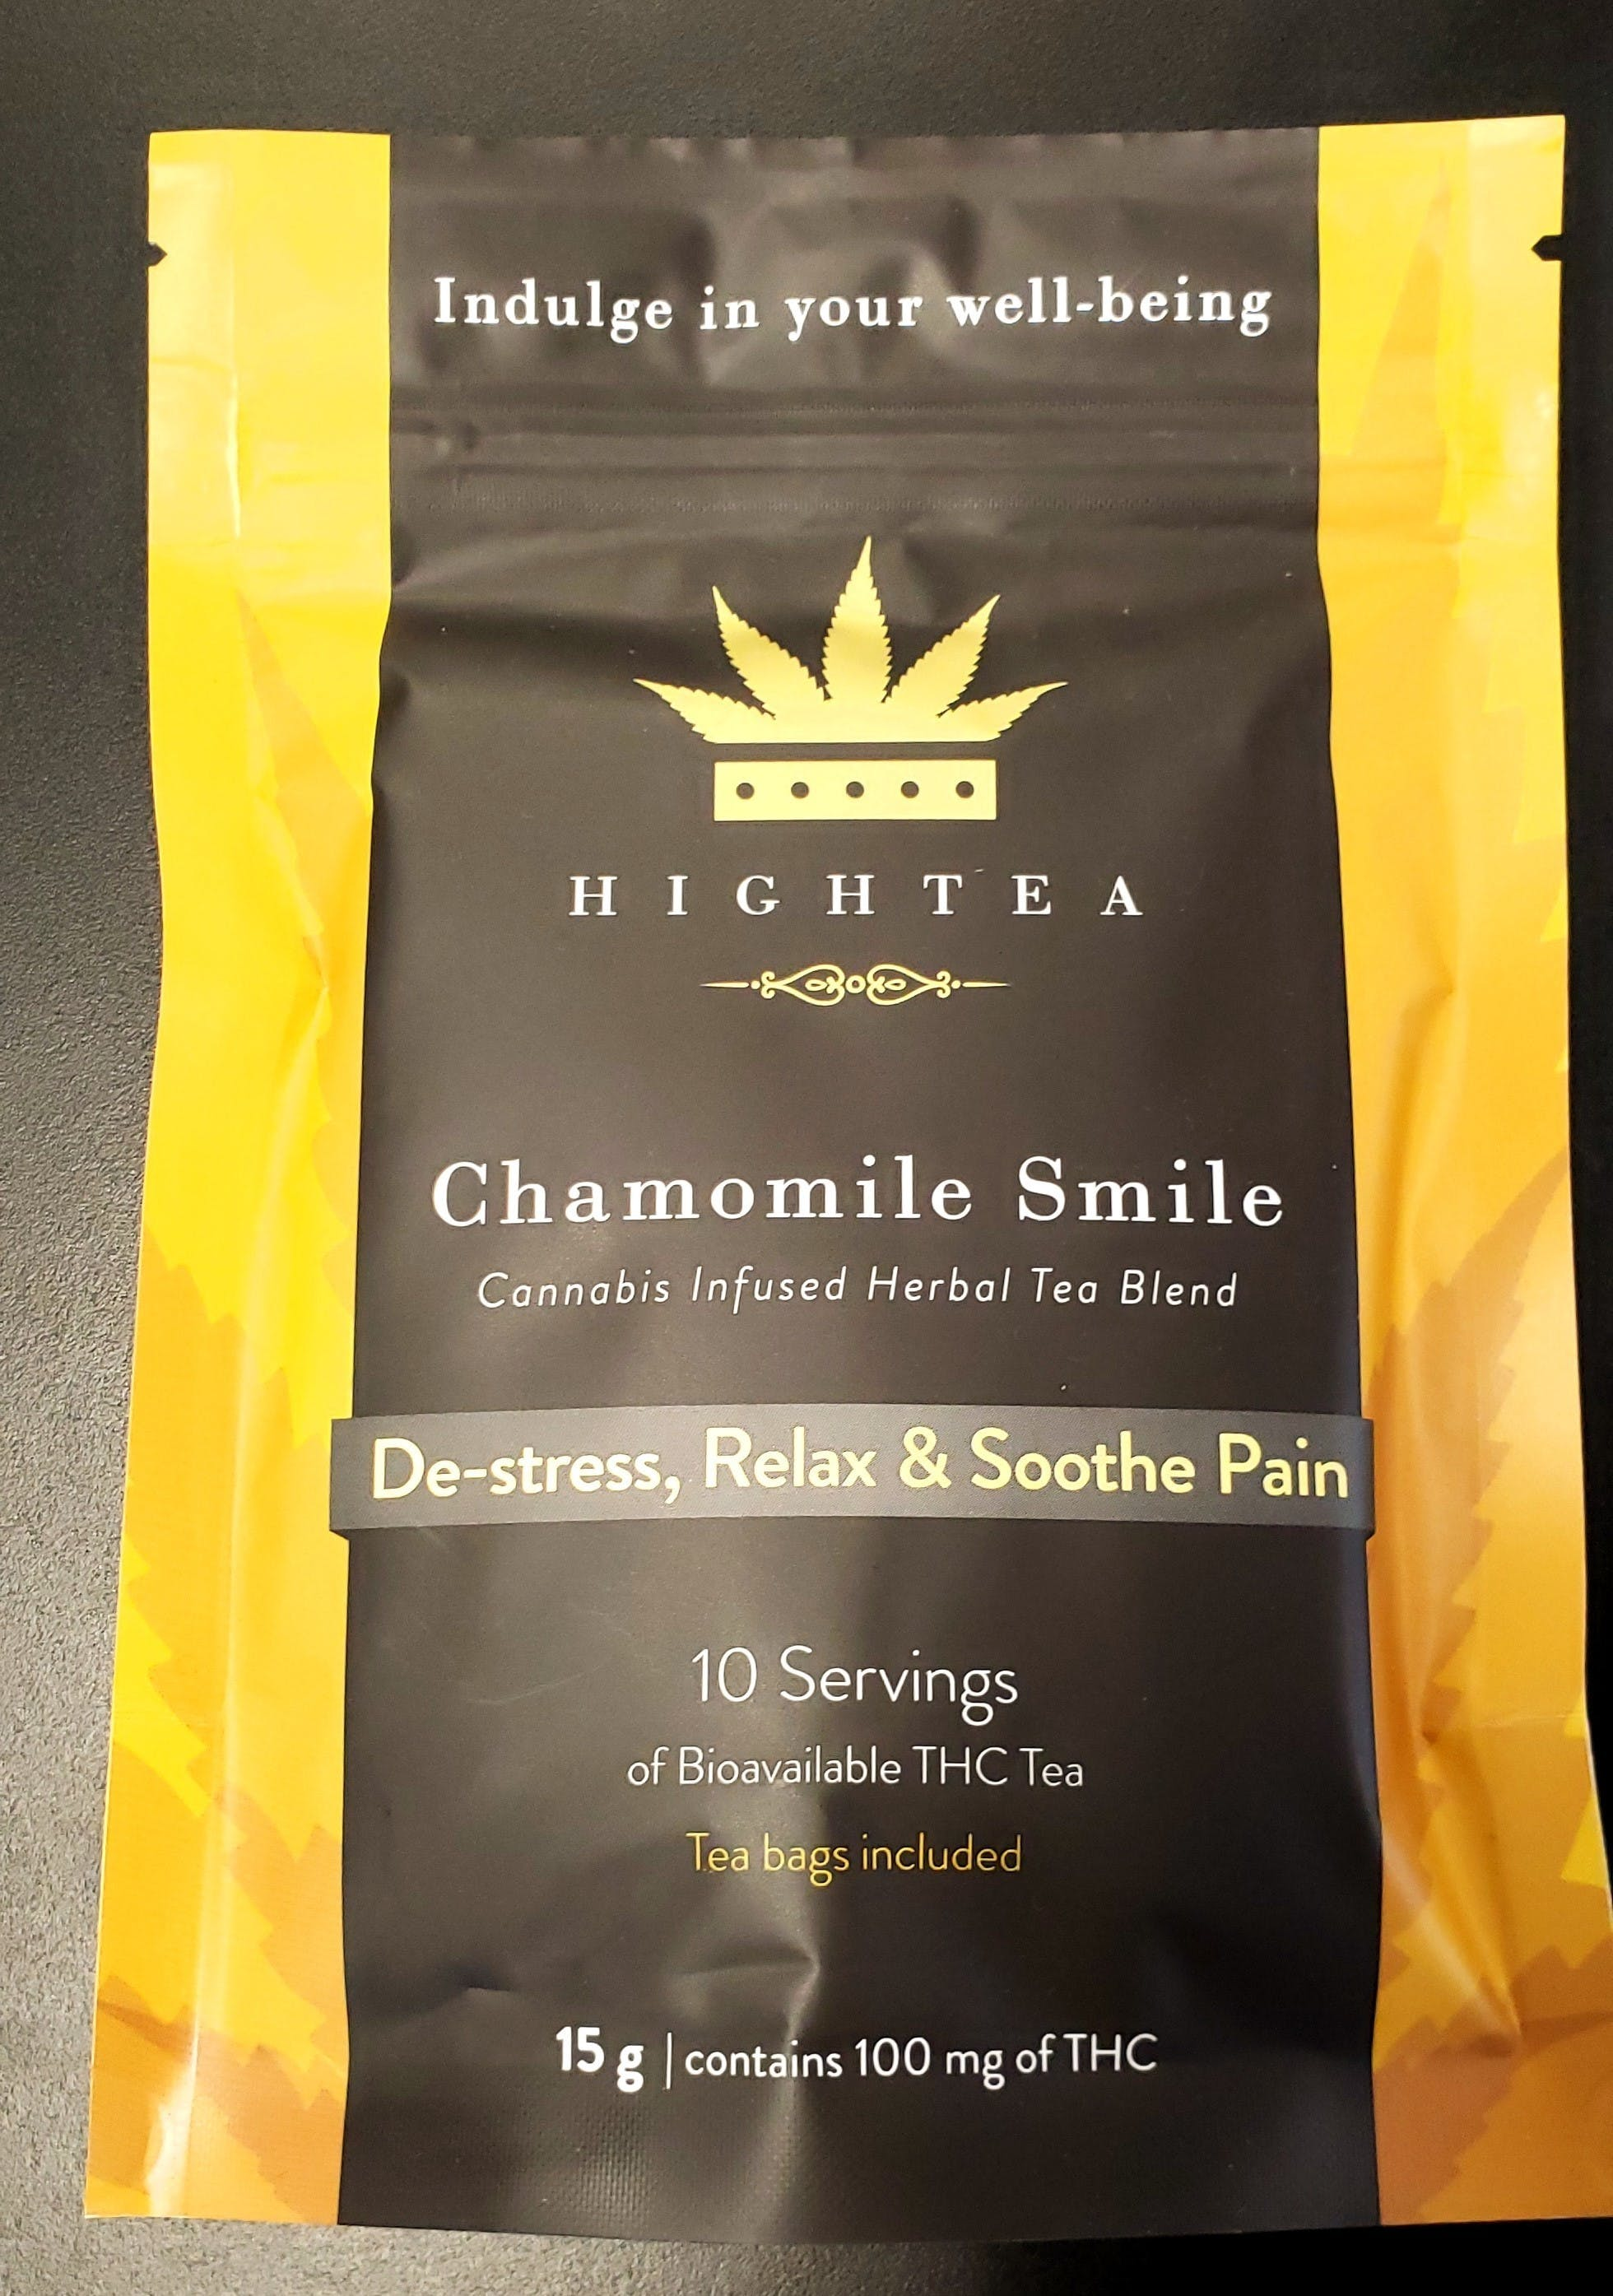 marijuana-dispensaries-487-rideau-st-ottawa-high-tea-chamomile-smile